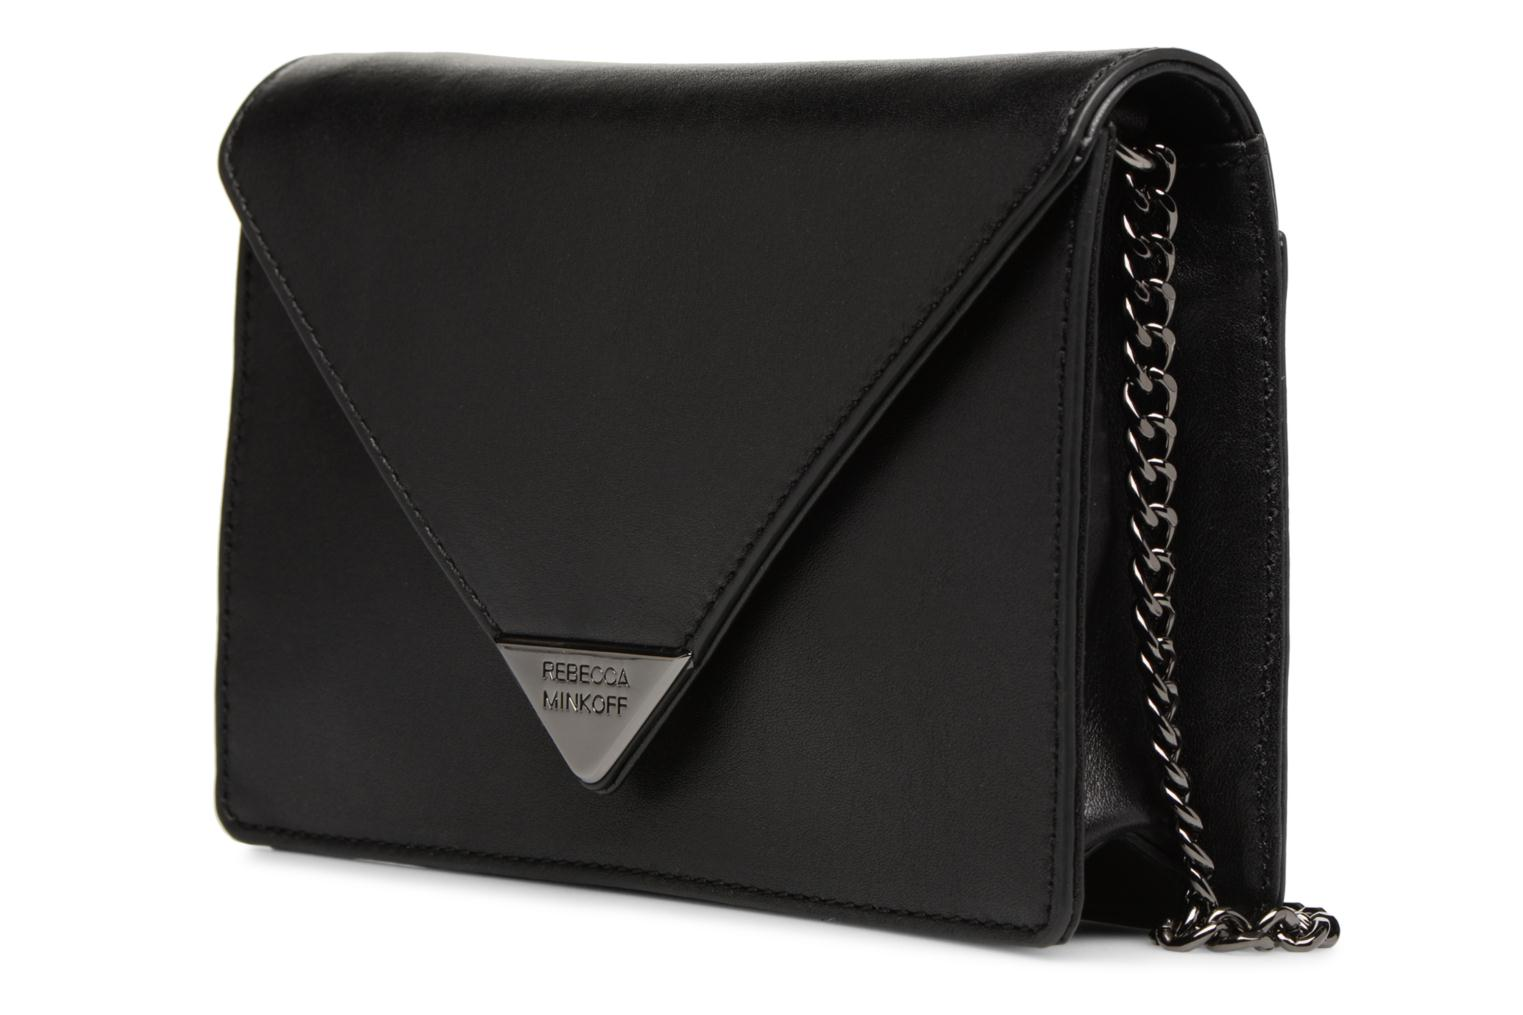 001 Molly Black Crossbody Minkoff Rebecca 5XIwSR